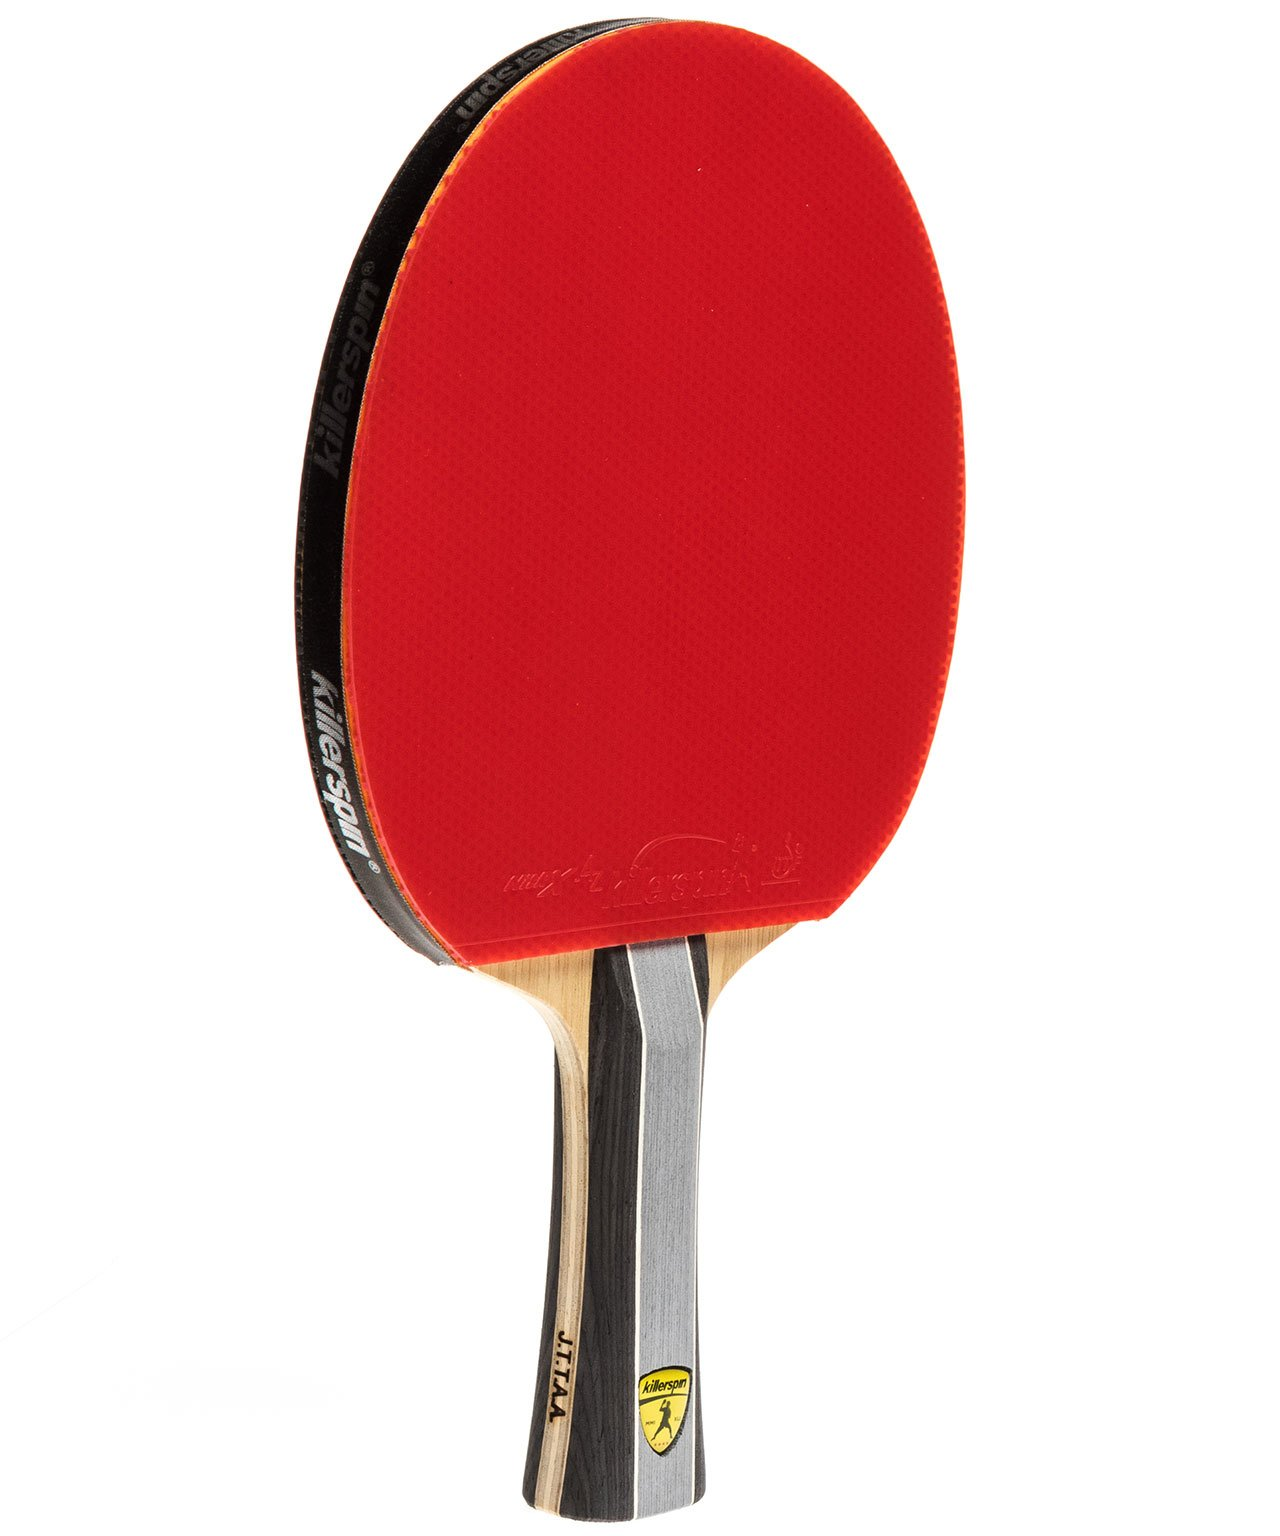 Killerspin Ping Pong Paddle Kido 7P RTG - Flared Red Rubber